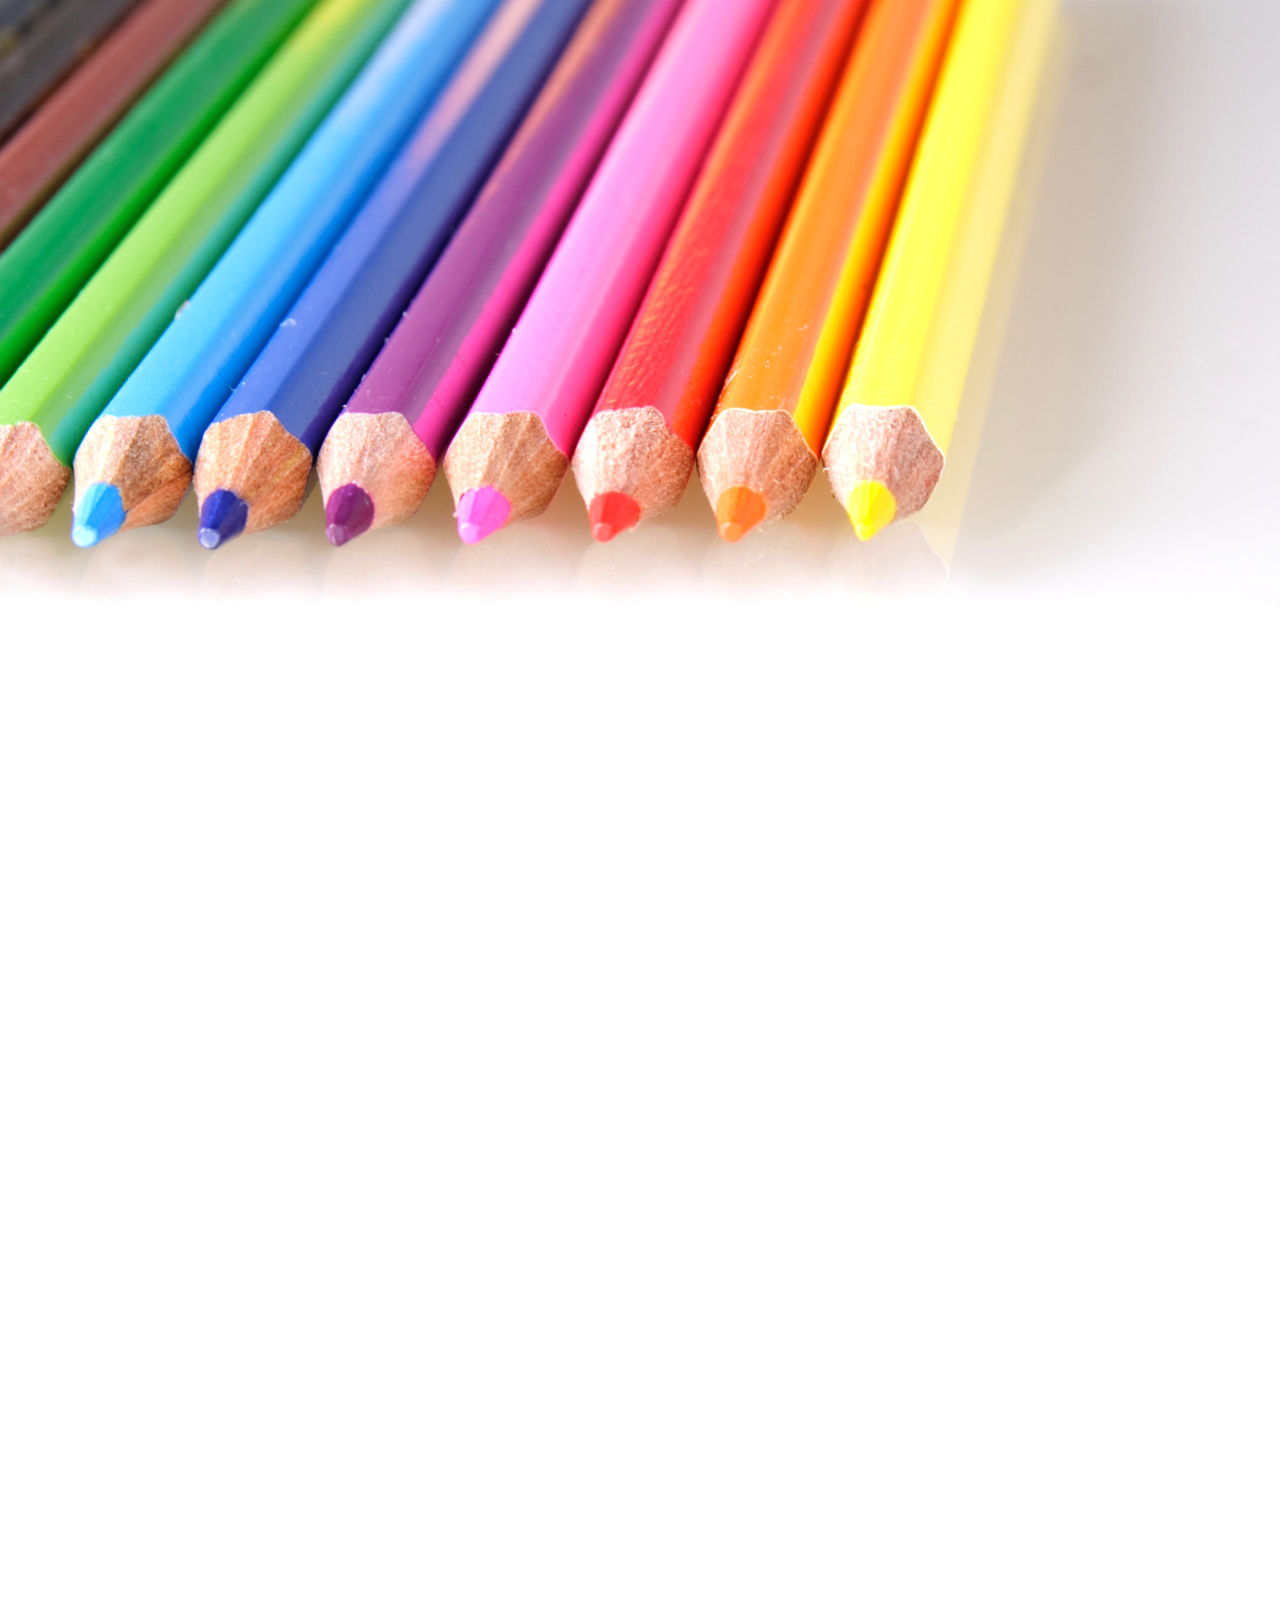 Beautiful stock photos of pencil, Art And Craft, Close-Up, Colored Pencil, Colorful